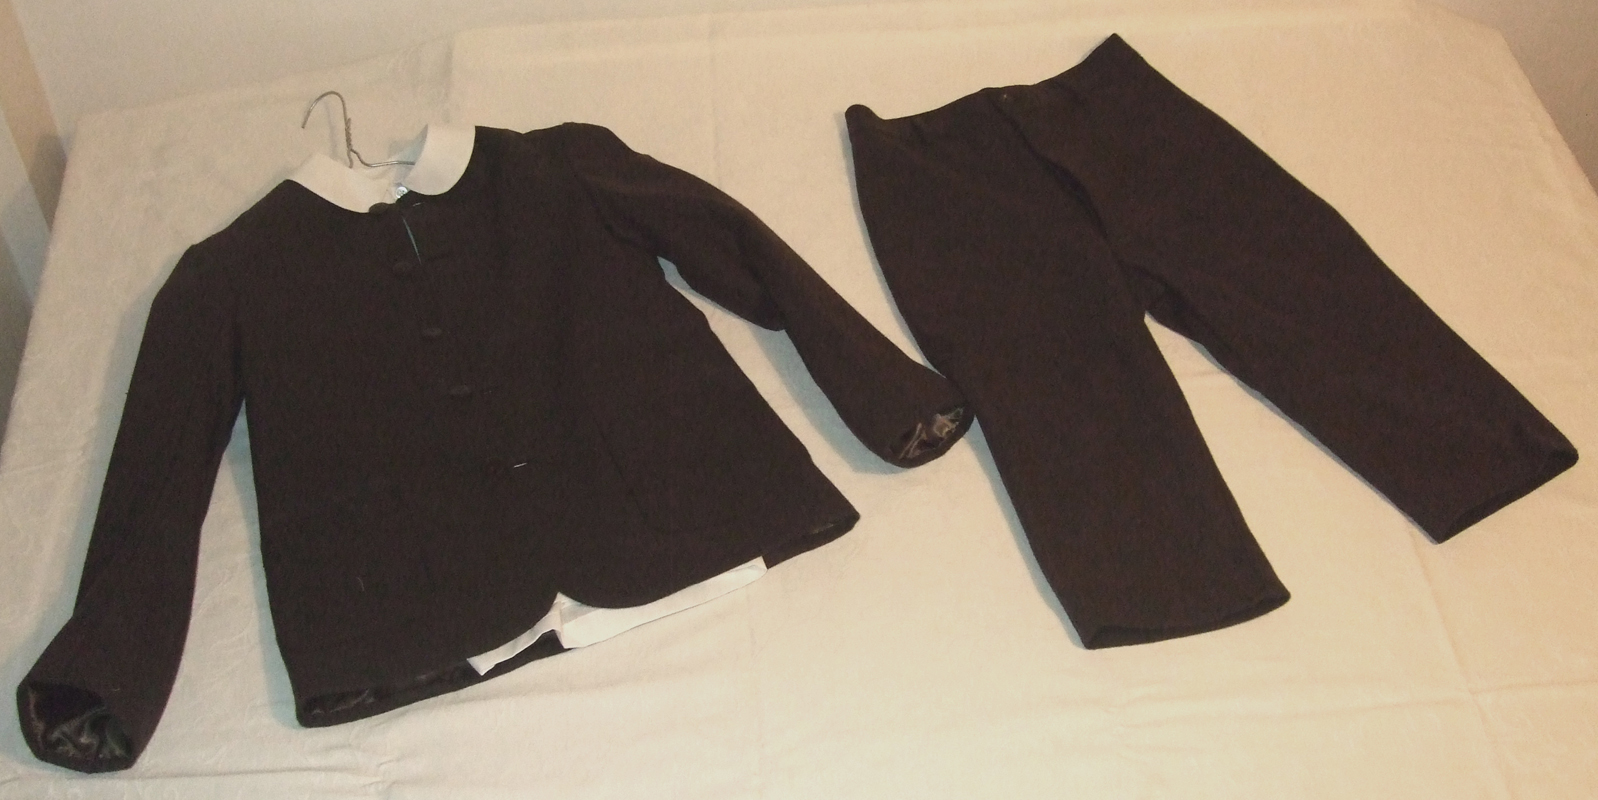 Victorian Schoolchildren outfits made for The museum of London.